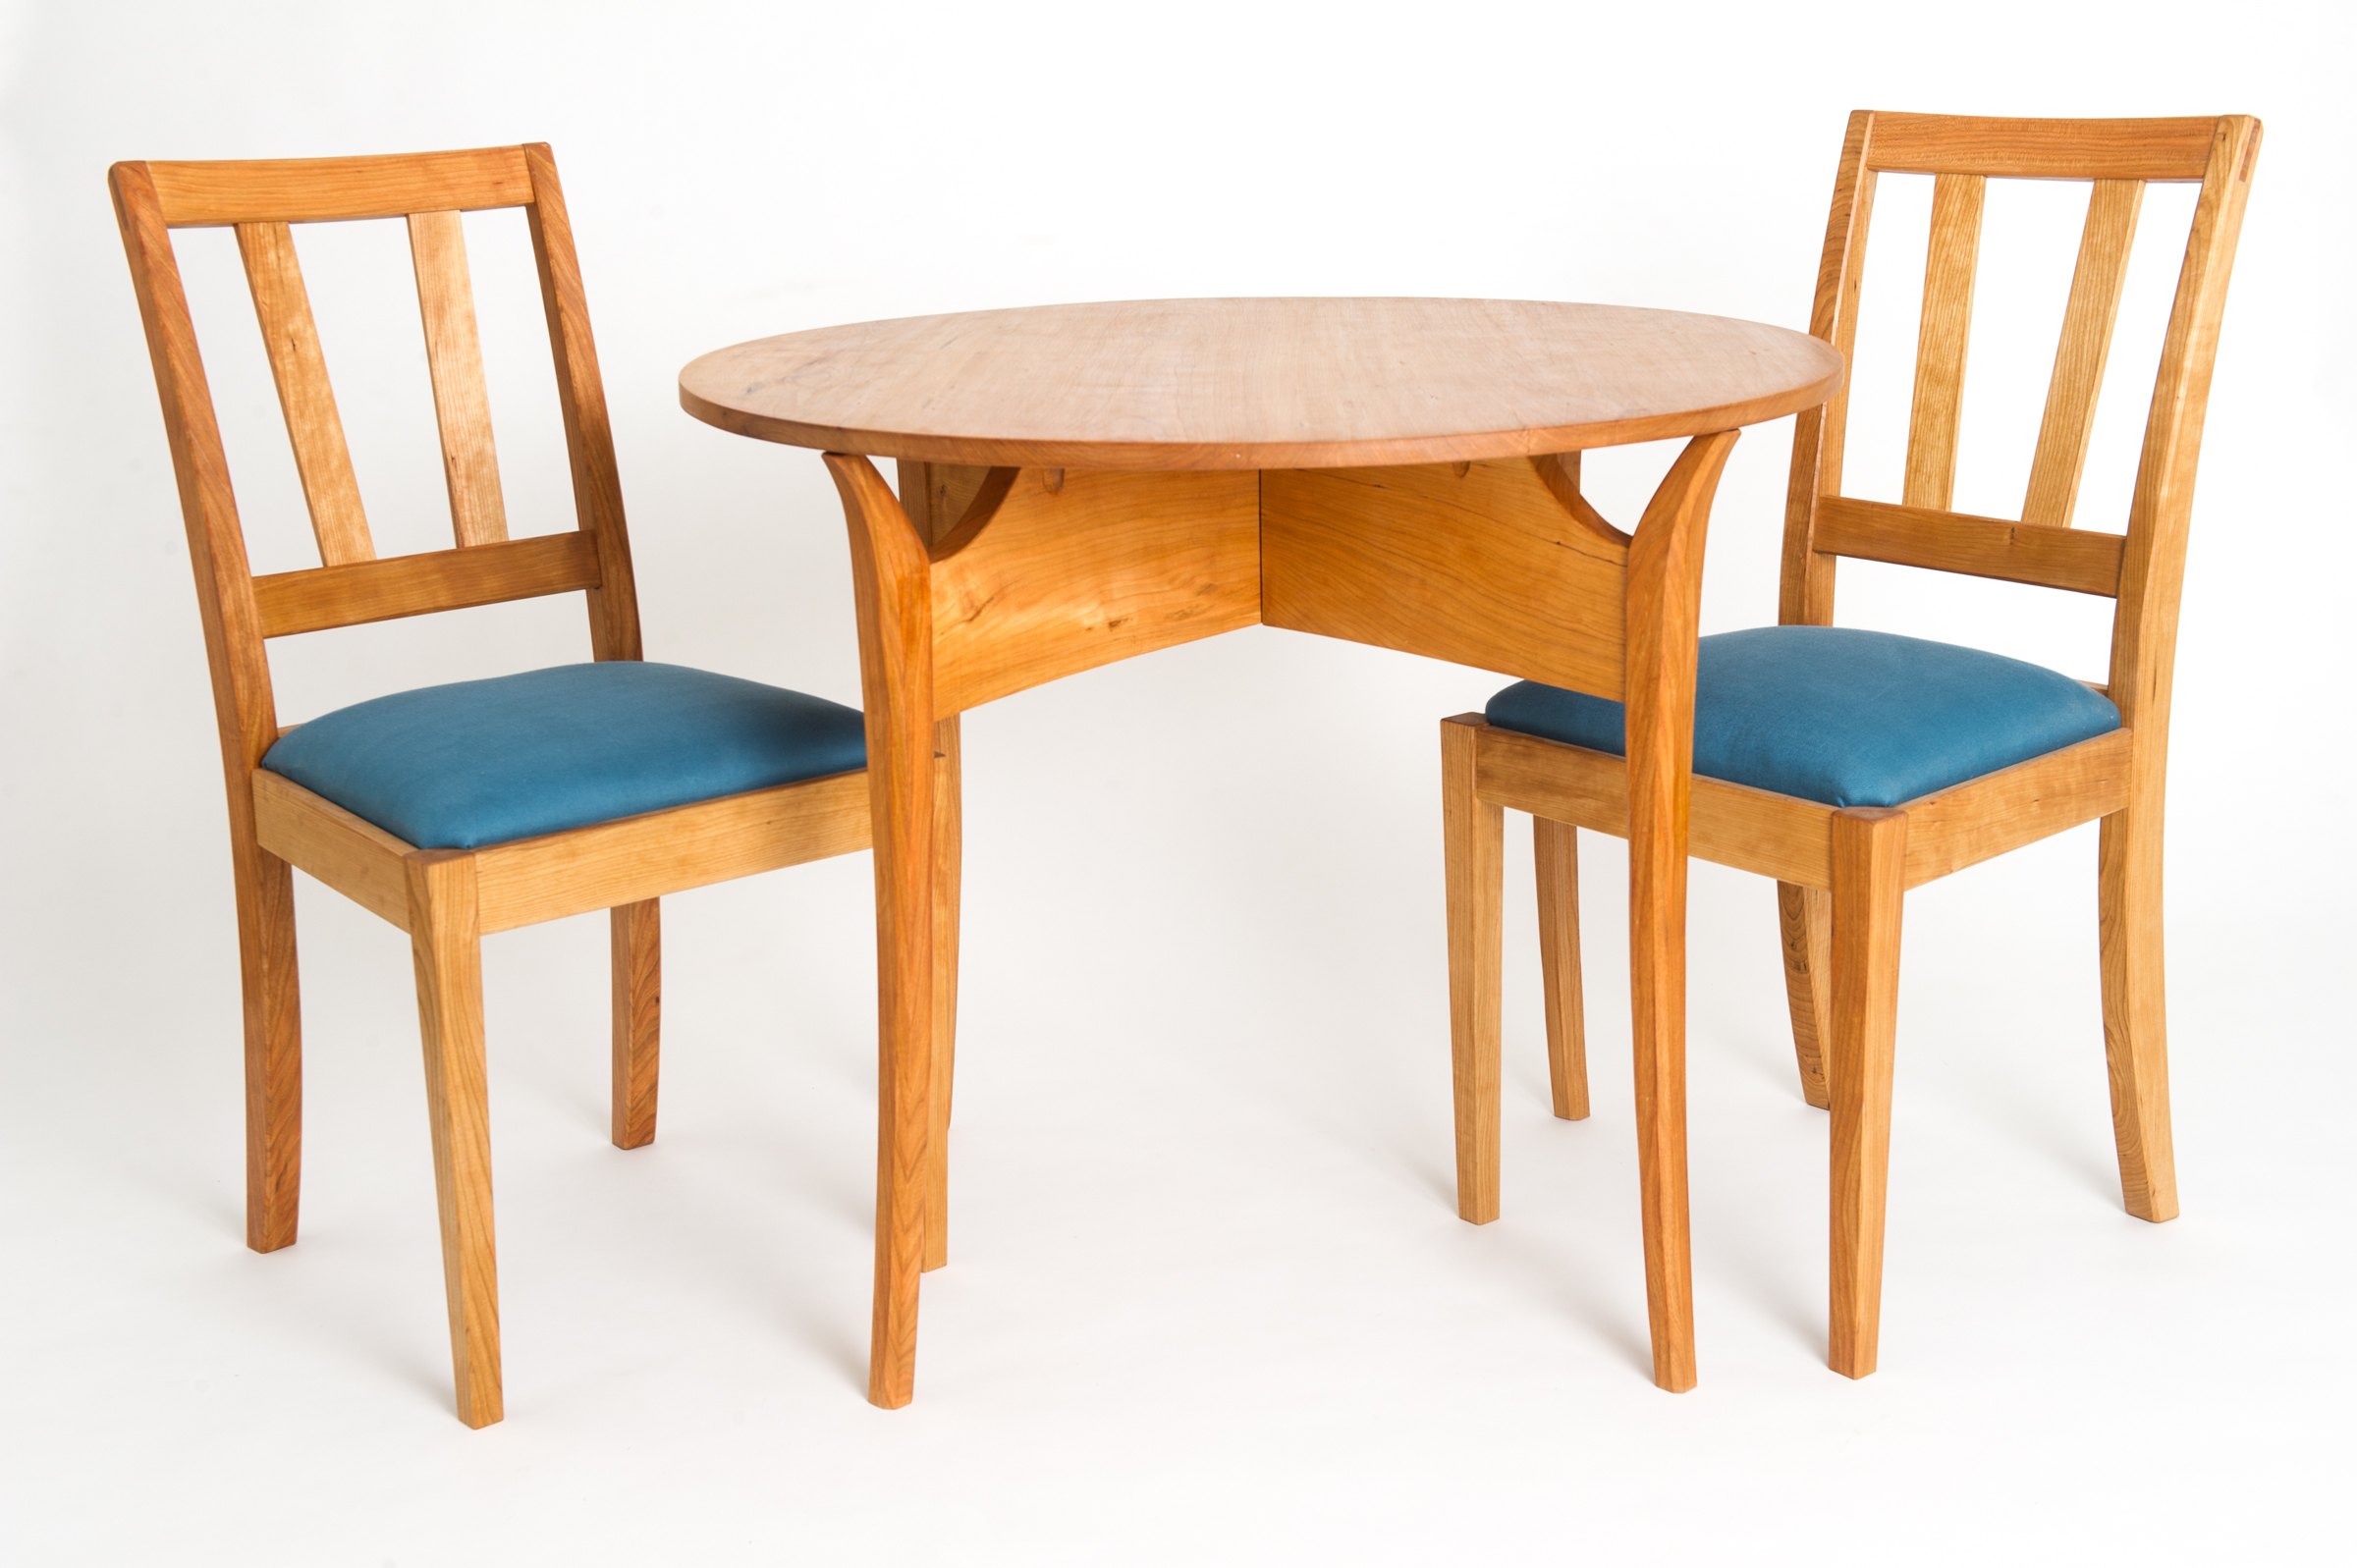 Breakfast Table and Chairs, Jason Breen